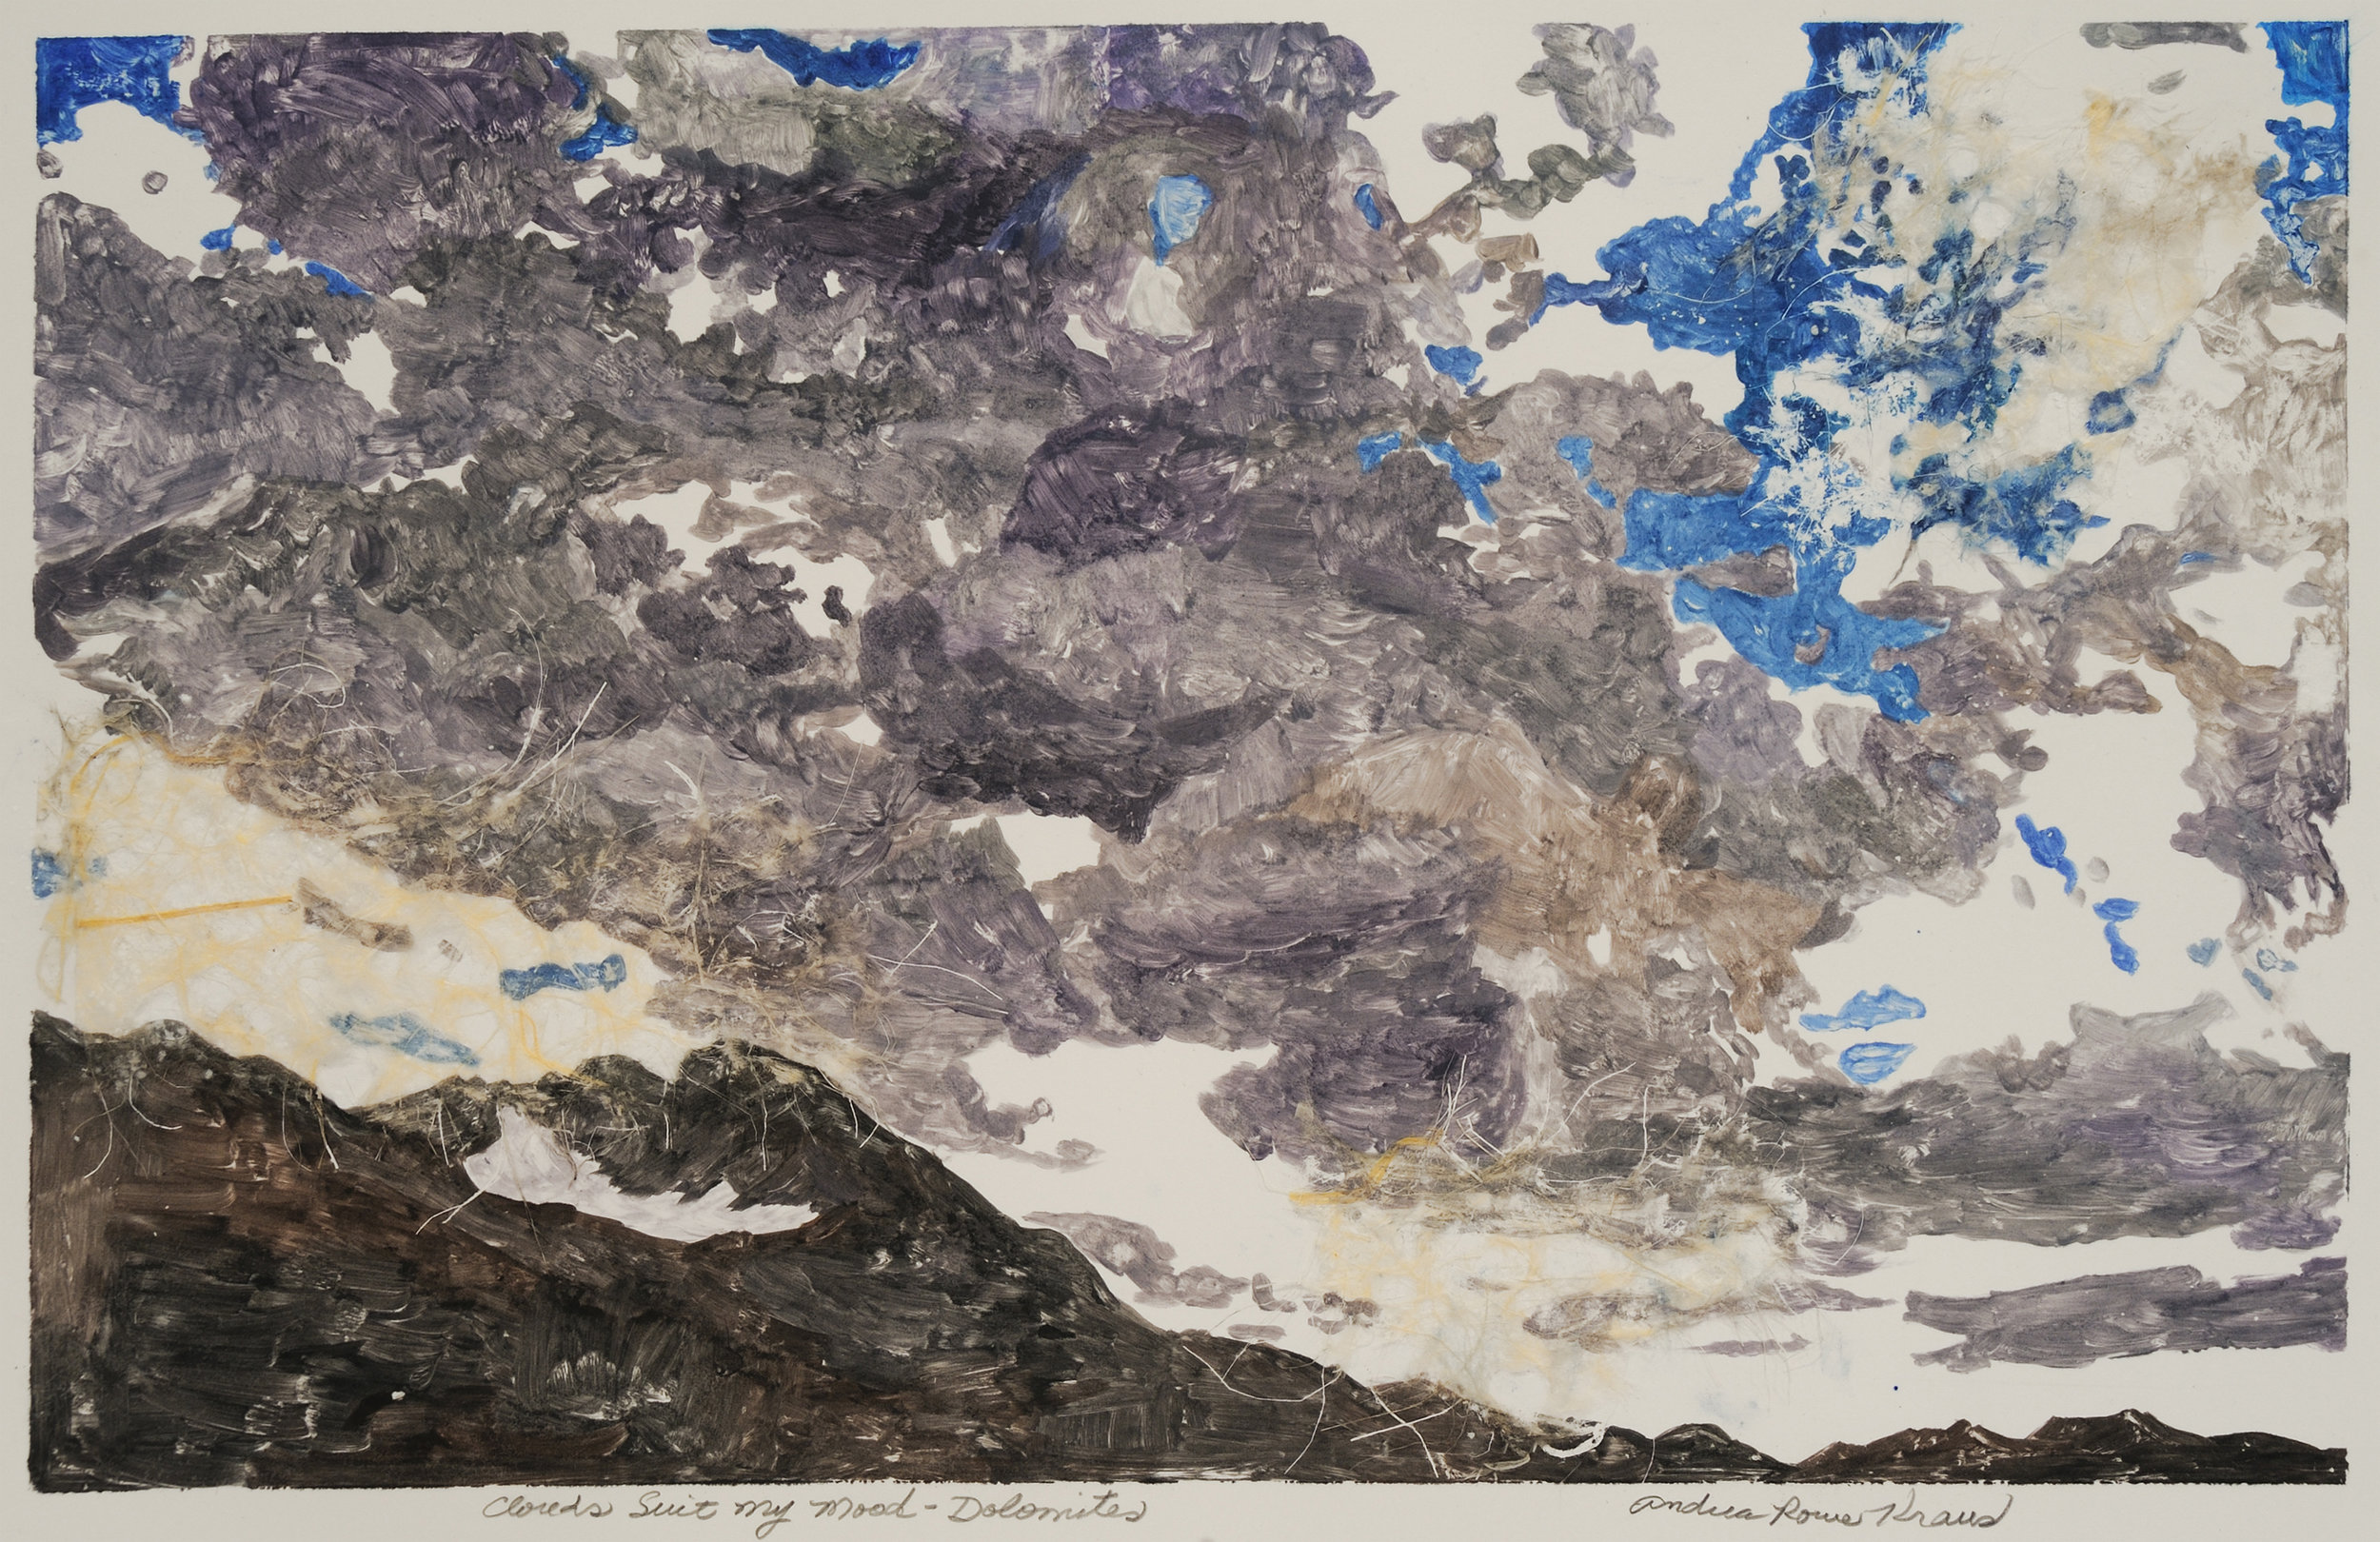 """Clouds Suit My Mood   Andrea Rowe Kraus  Chine Colle  25"""" x 18""""  $750   Click here to Inquire"""